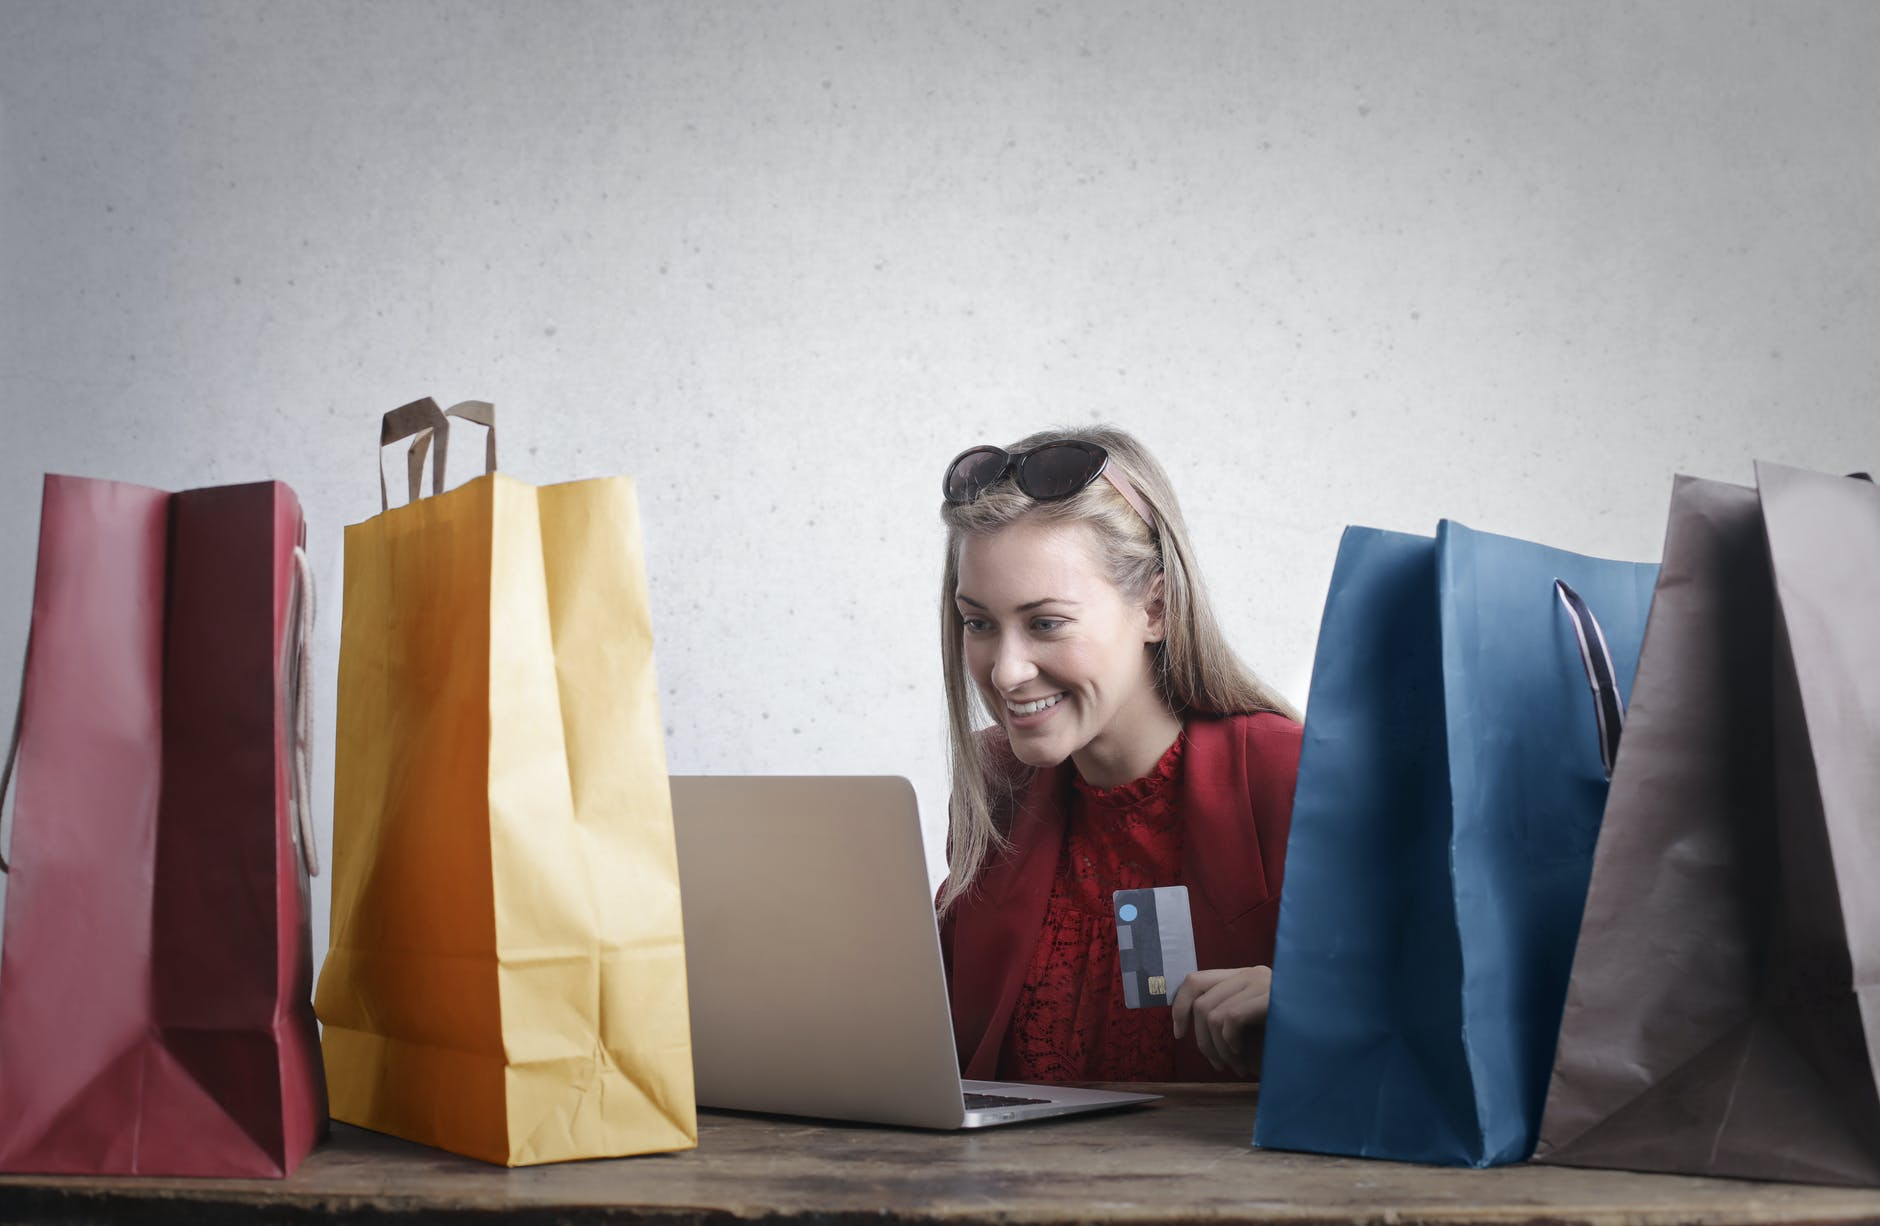 Online Gift Shopping by Andrea Piacquadio on Pexels.